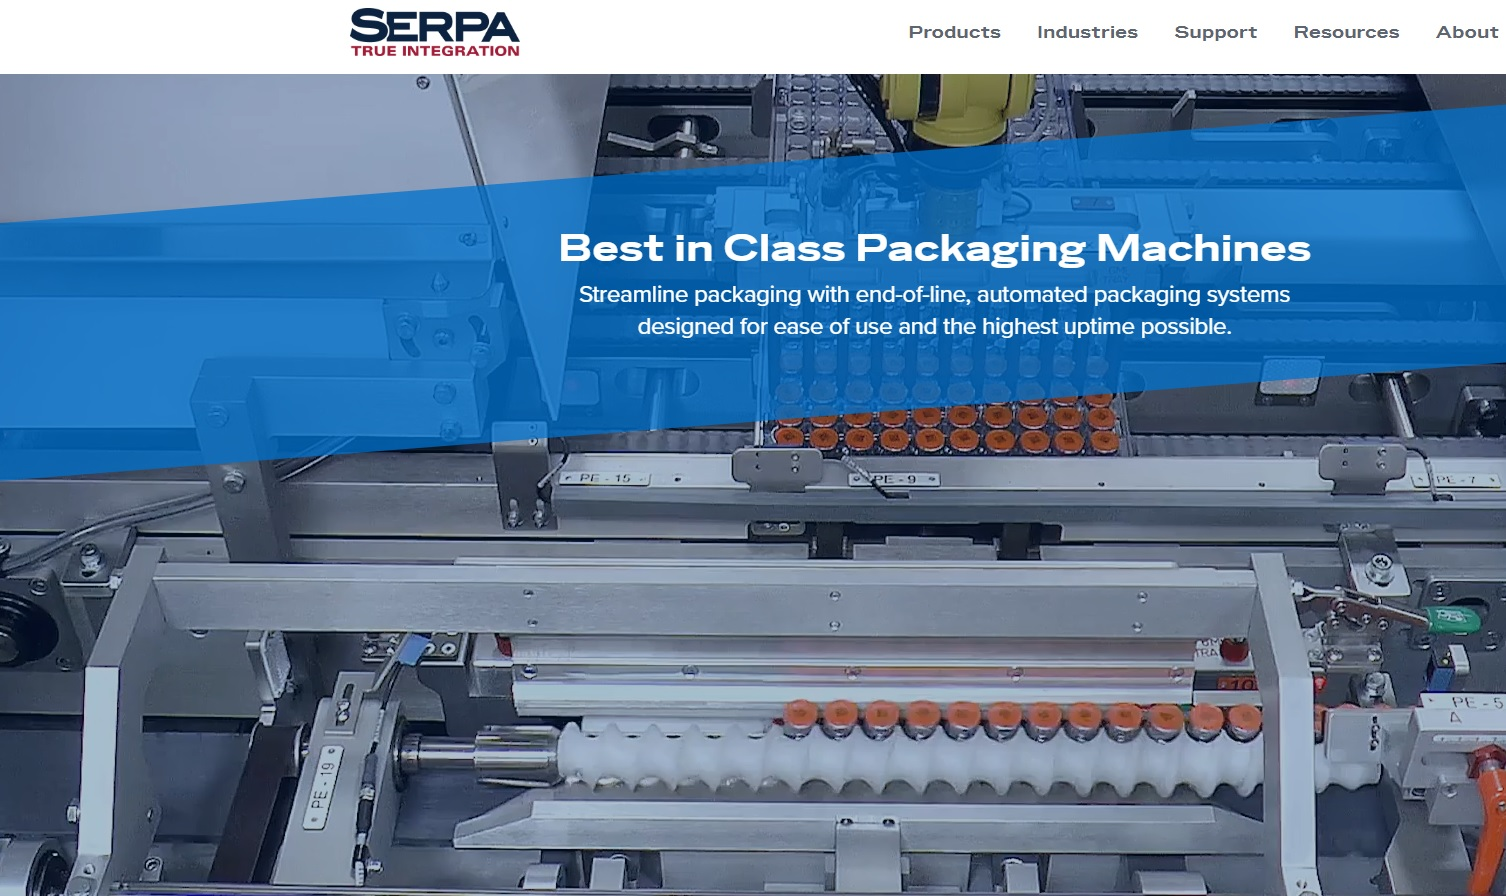 Serpa Packaging Solutions